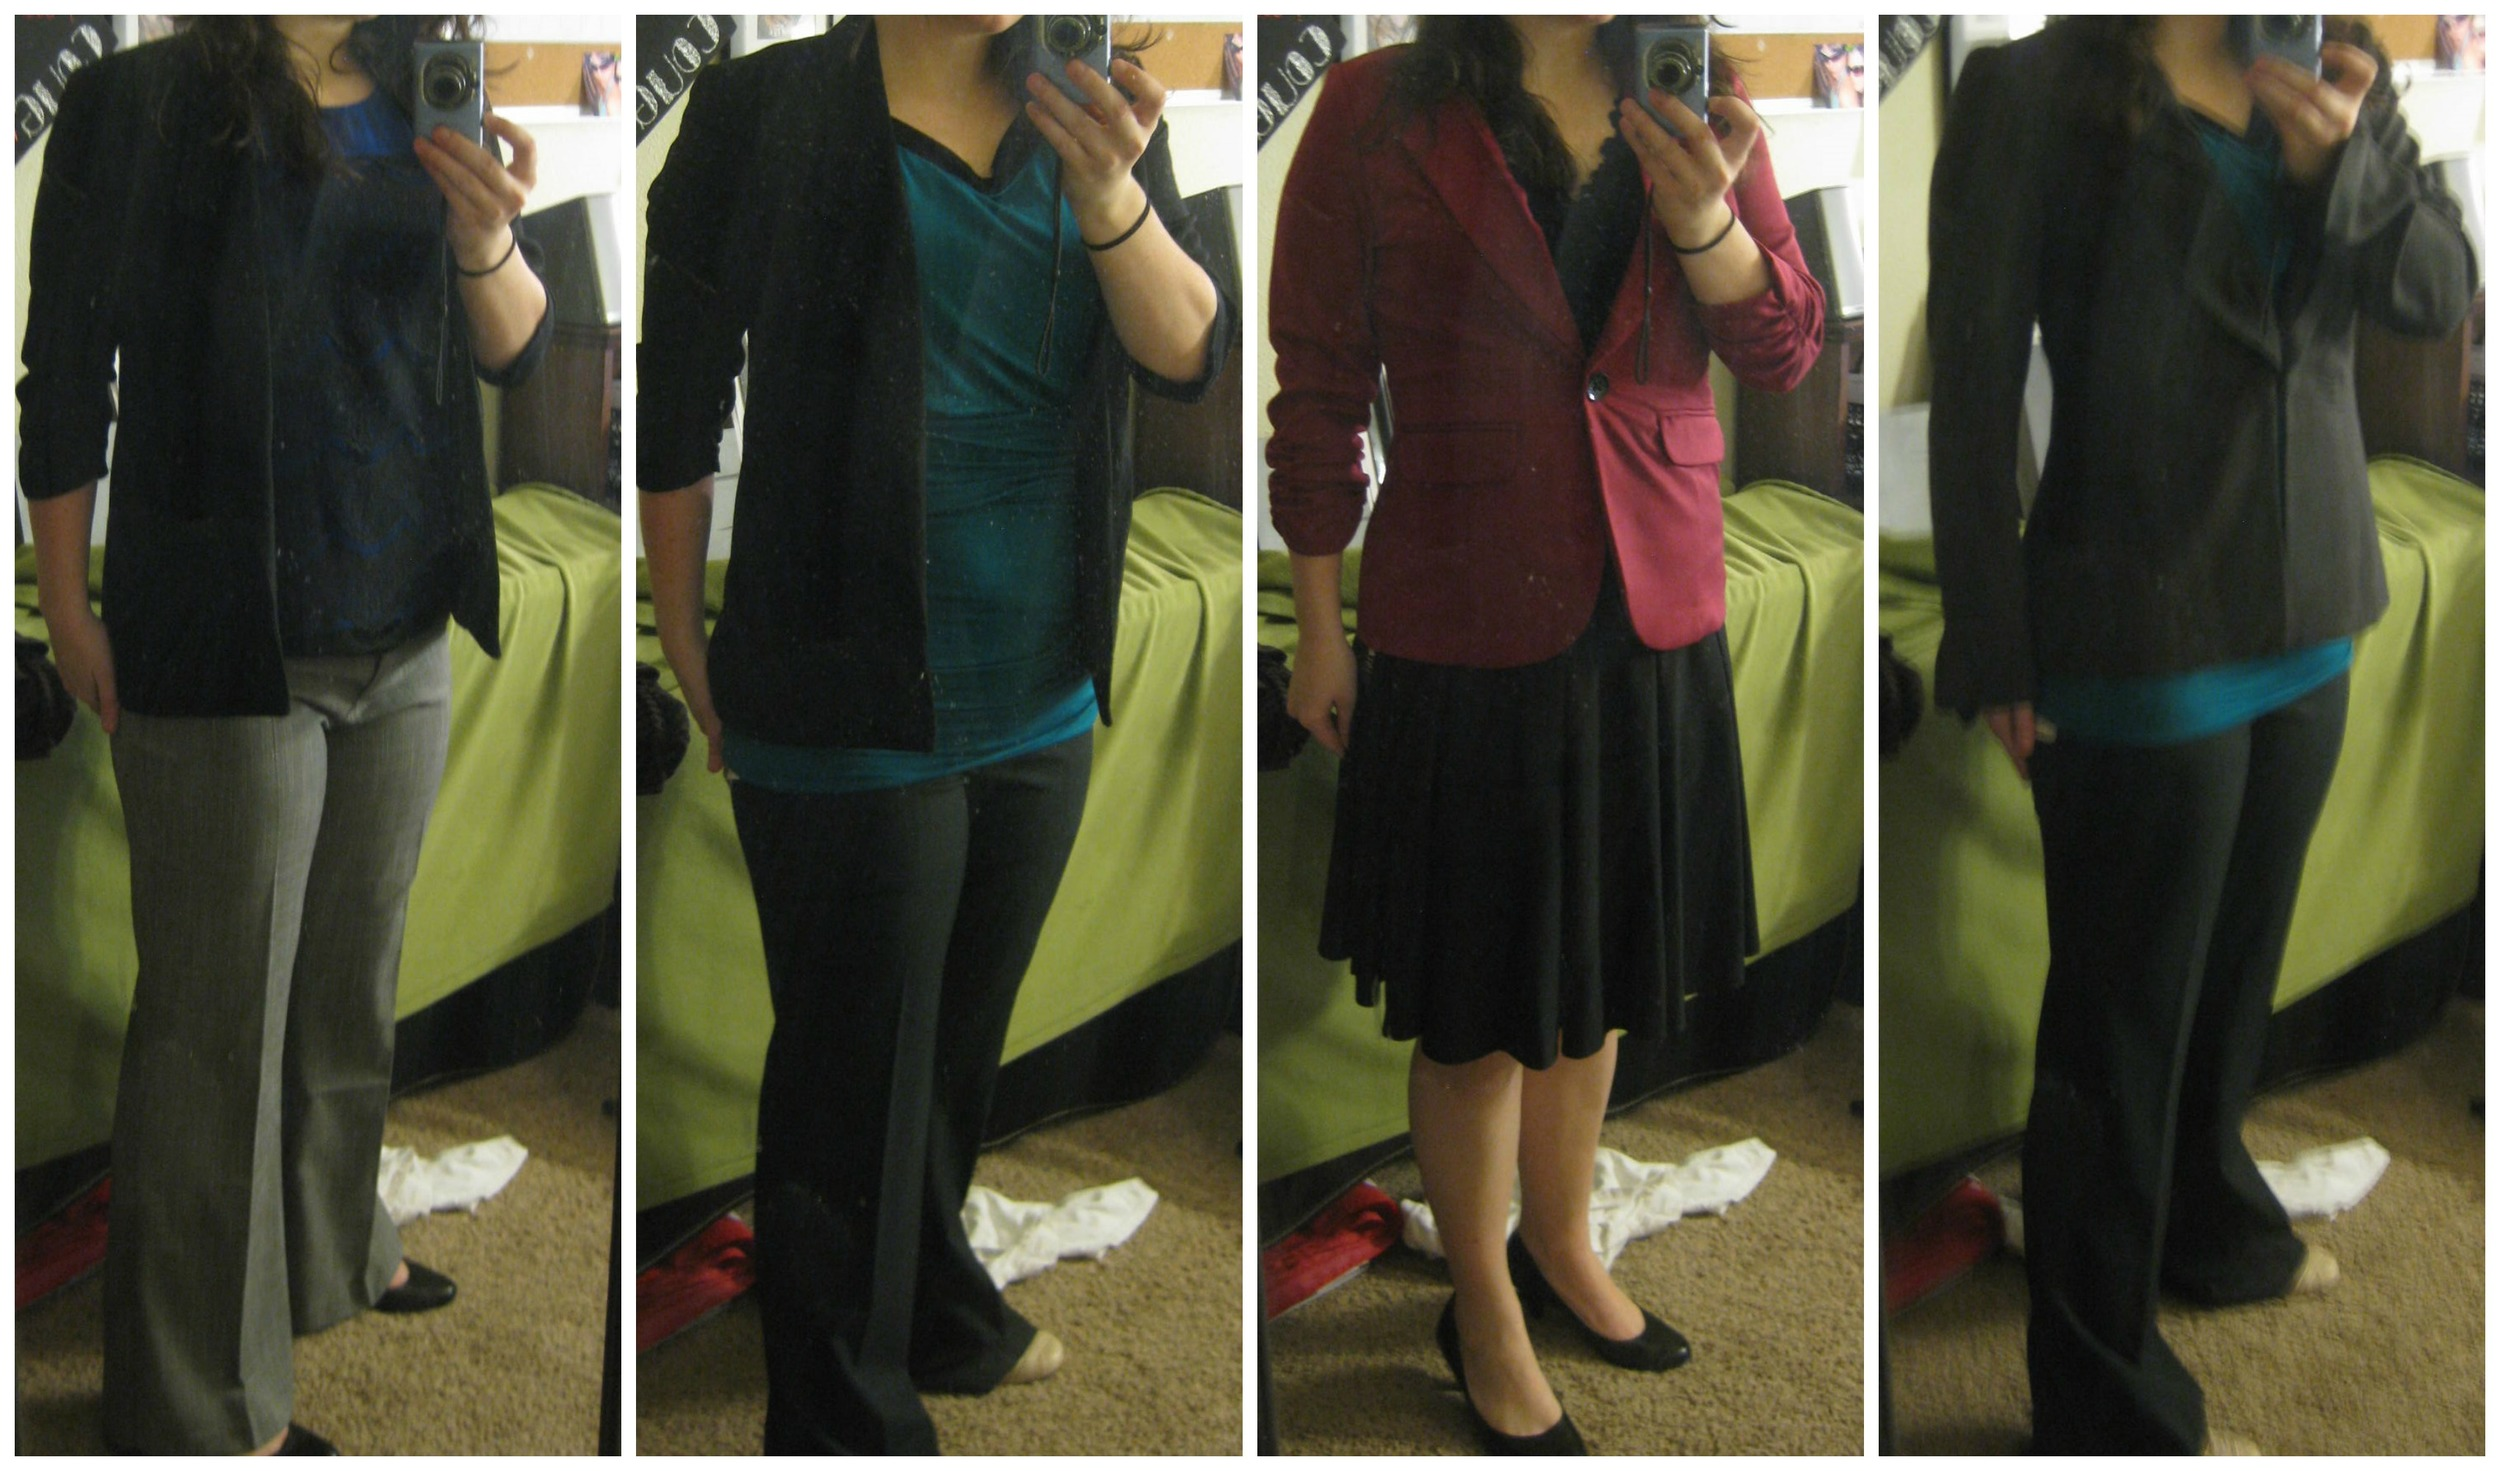 Just some interview outfit ideas! The grey slacks, black blazer, and cranberry colored blazer were some of my go-to pieces! I only really busted out the skirt when I was down South and felt I should be more lady-like! Apologies for the terrible quality! These were from a few years ago when I had a cell phone with a REALLY terrible camera.